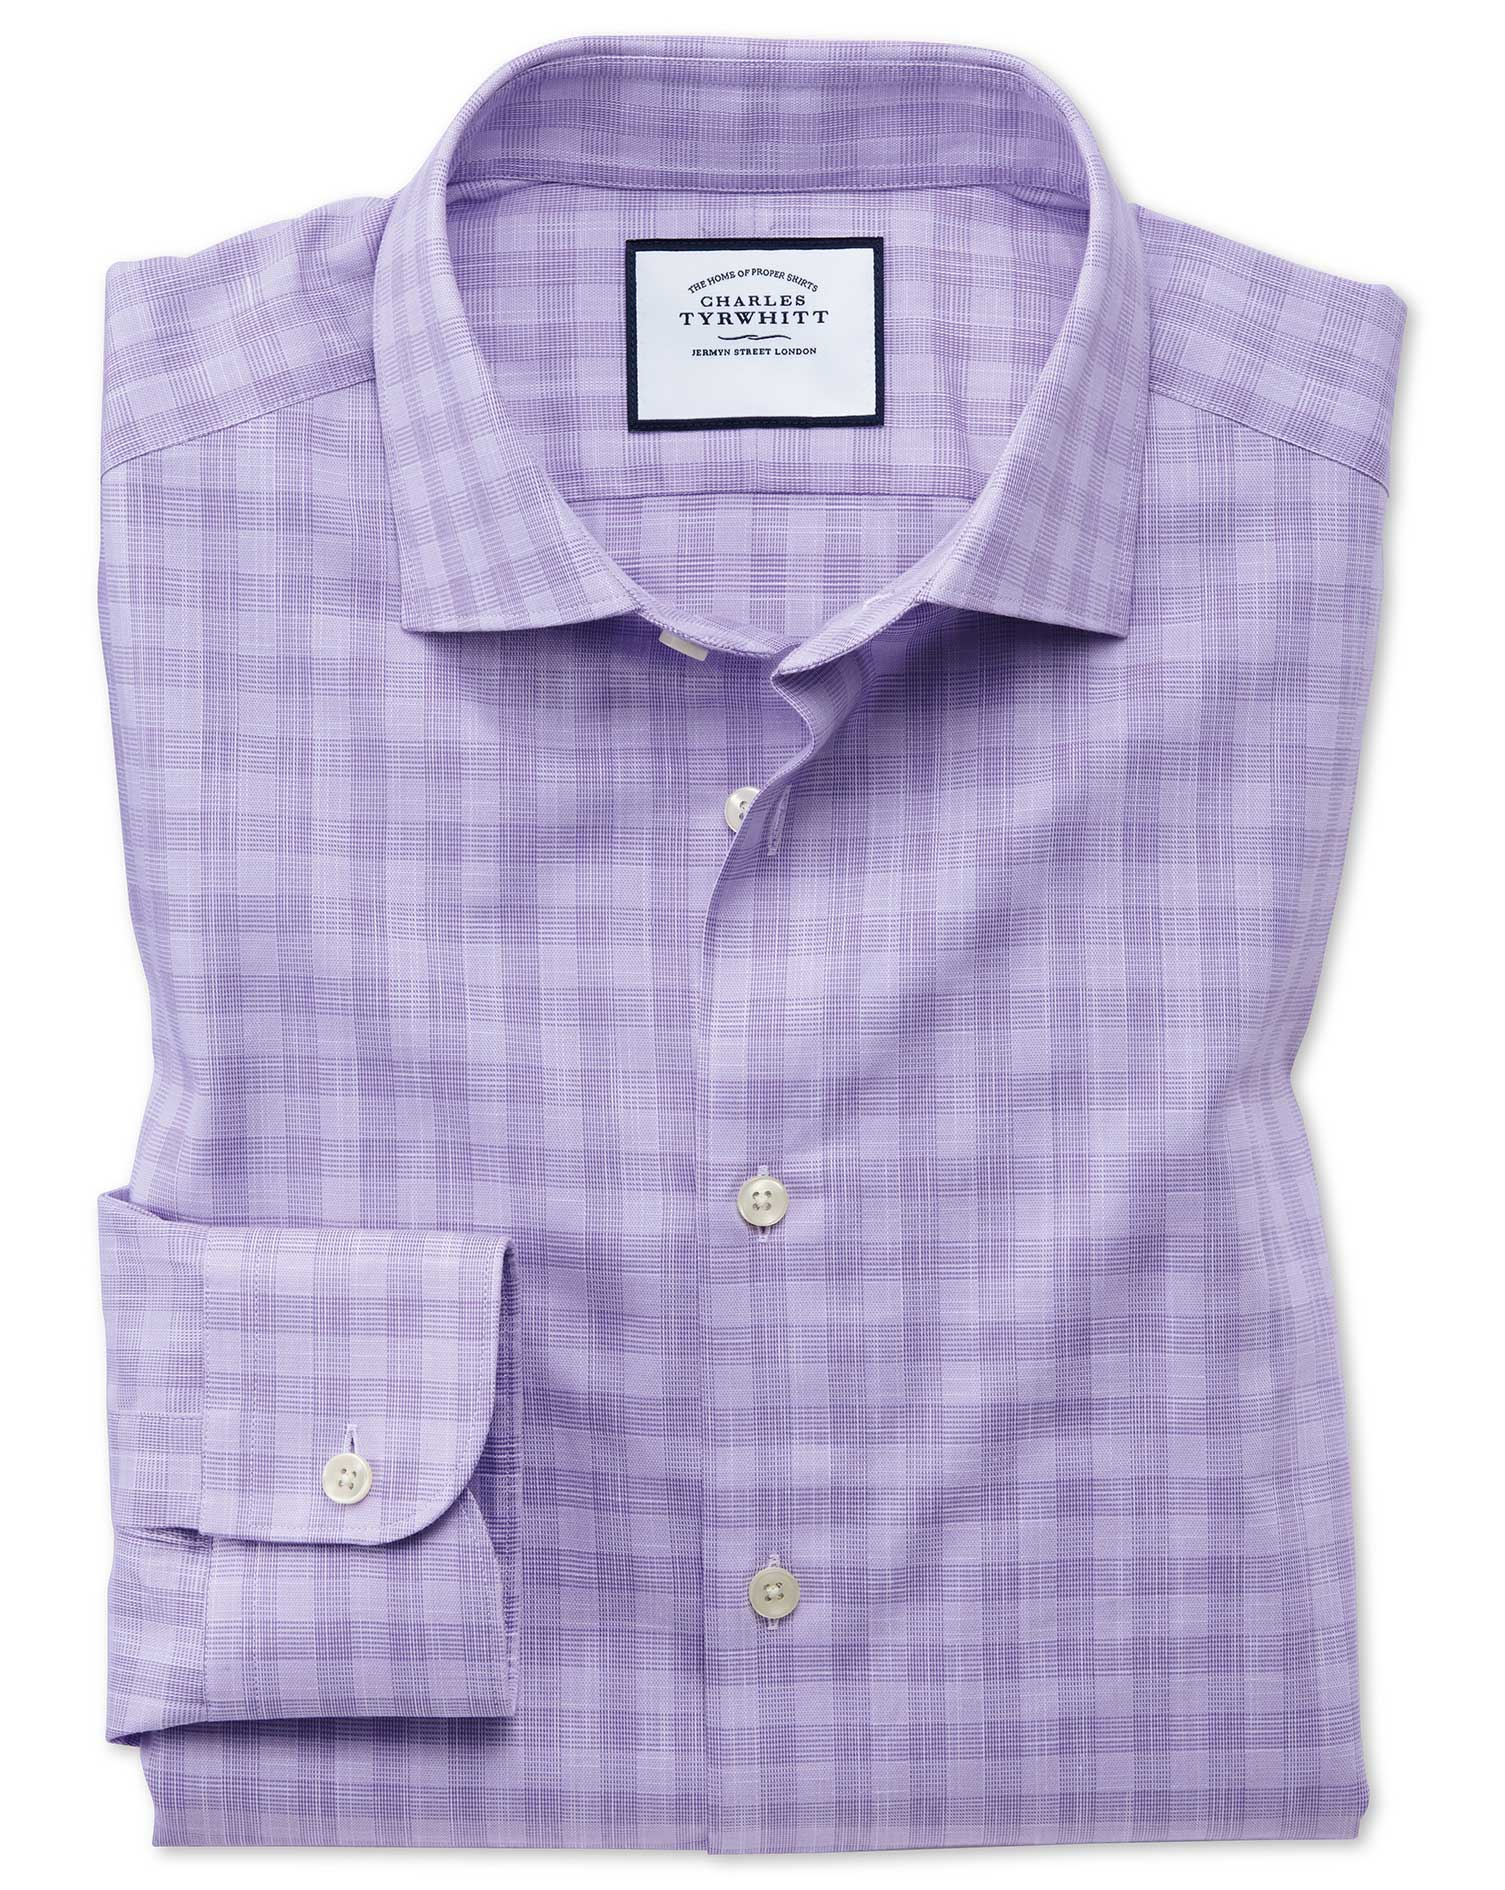 Slim Fit Business Casual Egyptian Cotton Slub Lilac Check Formal Shirt Single Cuff Size 15/33 by Cha